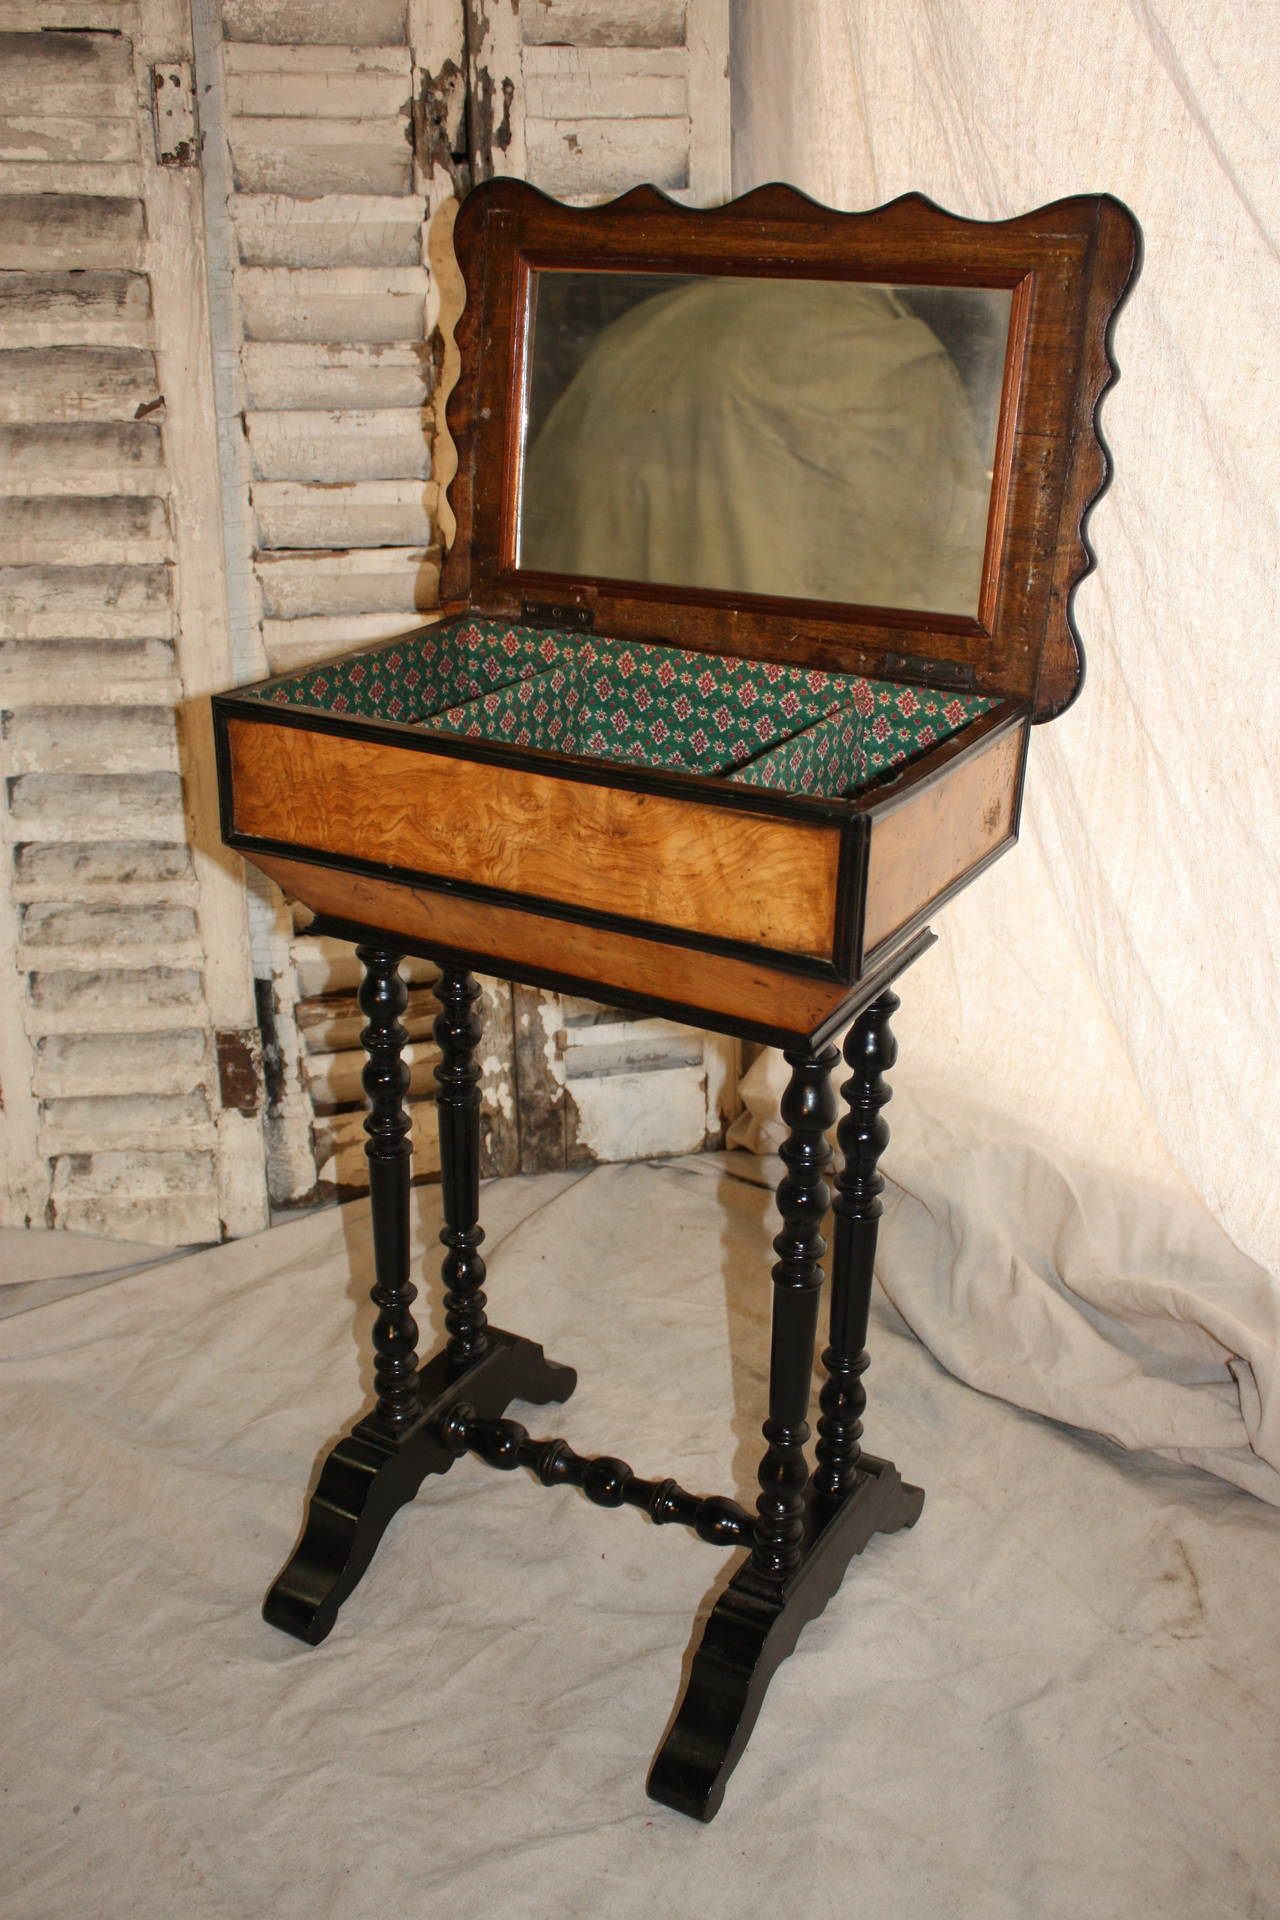 Napoleon III Charming 19th Century French Side Table For Sale